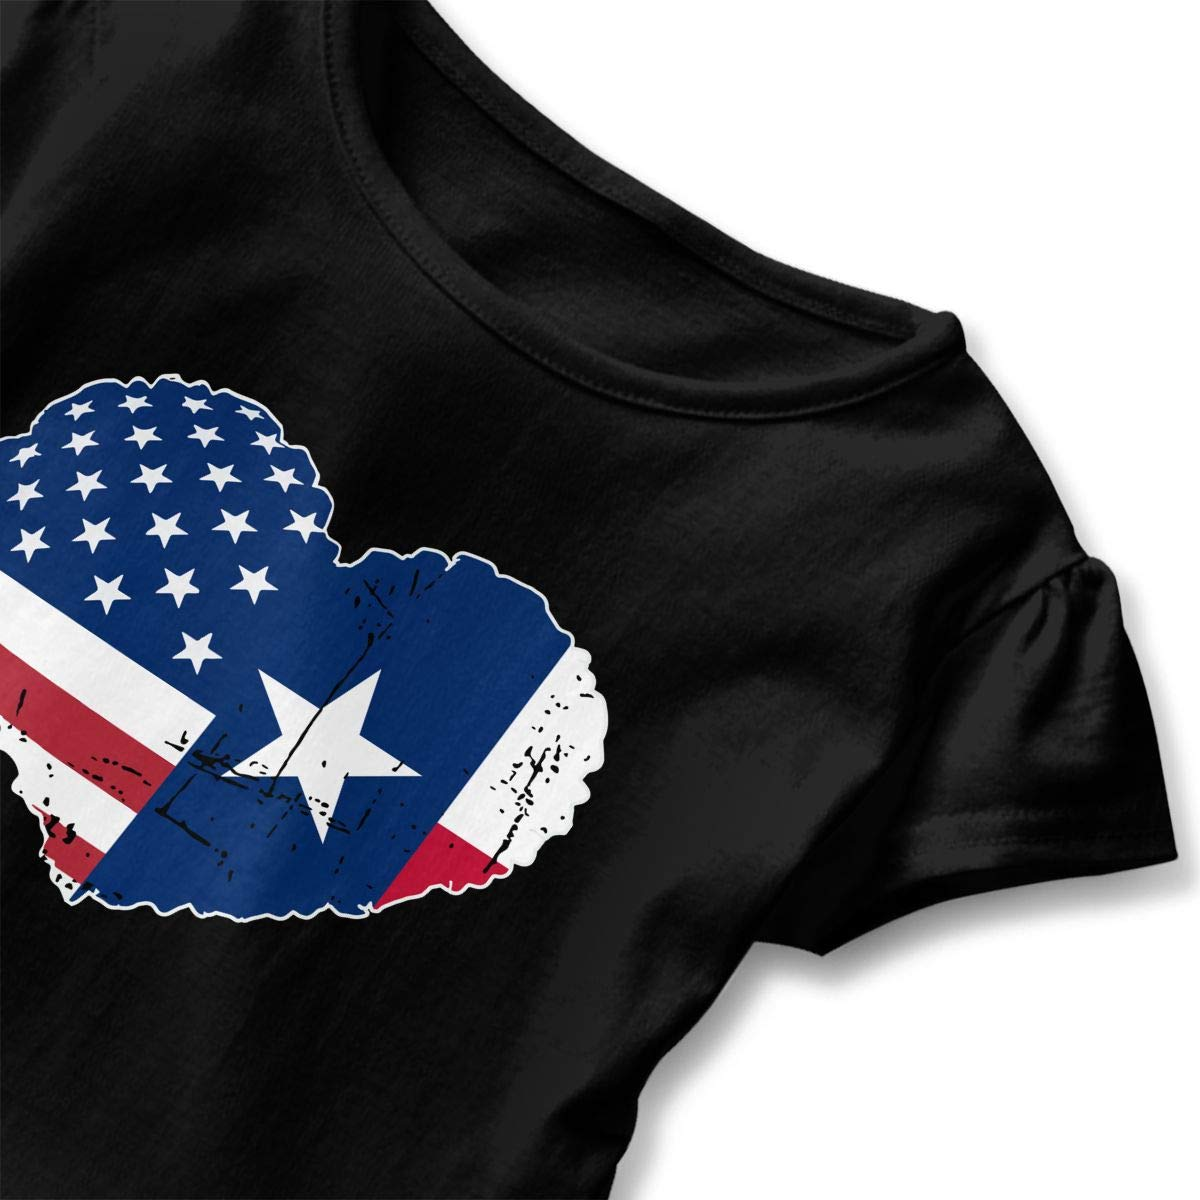 Kcloer24 Unisex Toddler Texas USA Flag Heart Personality Short Sleeve Ruffles T-Shirt Summer Clothes for 2-6 Years Old